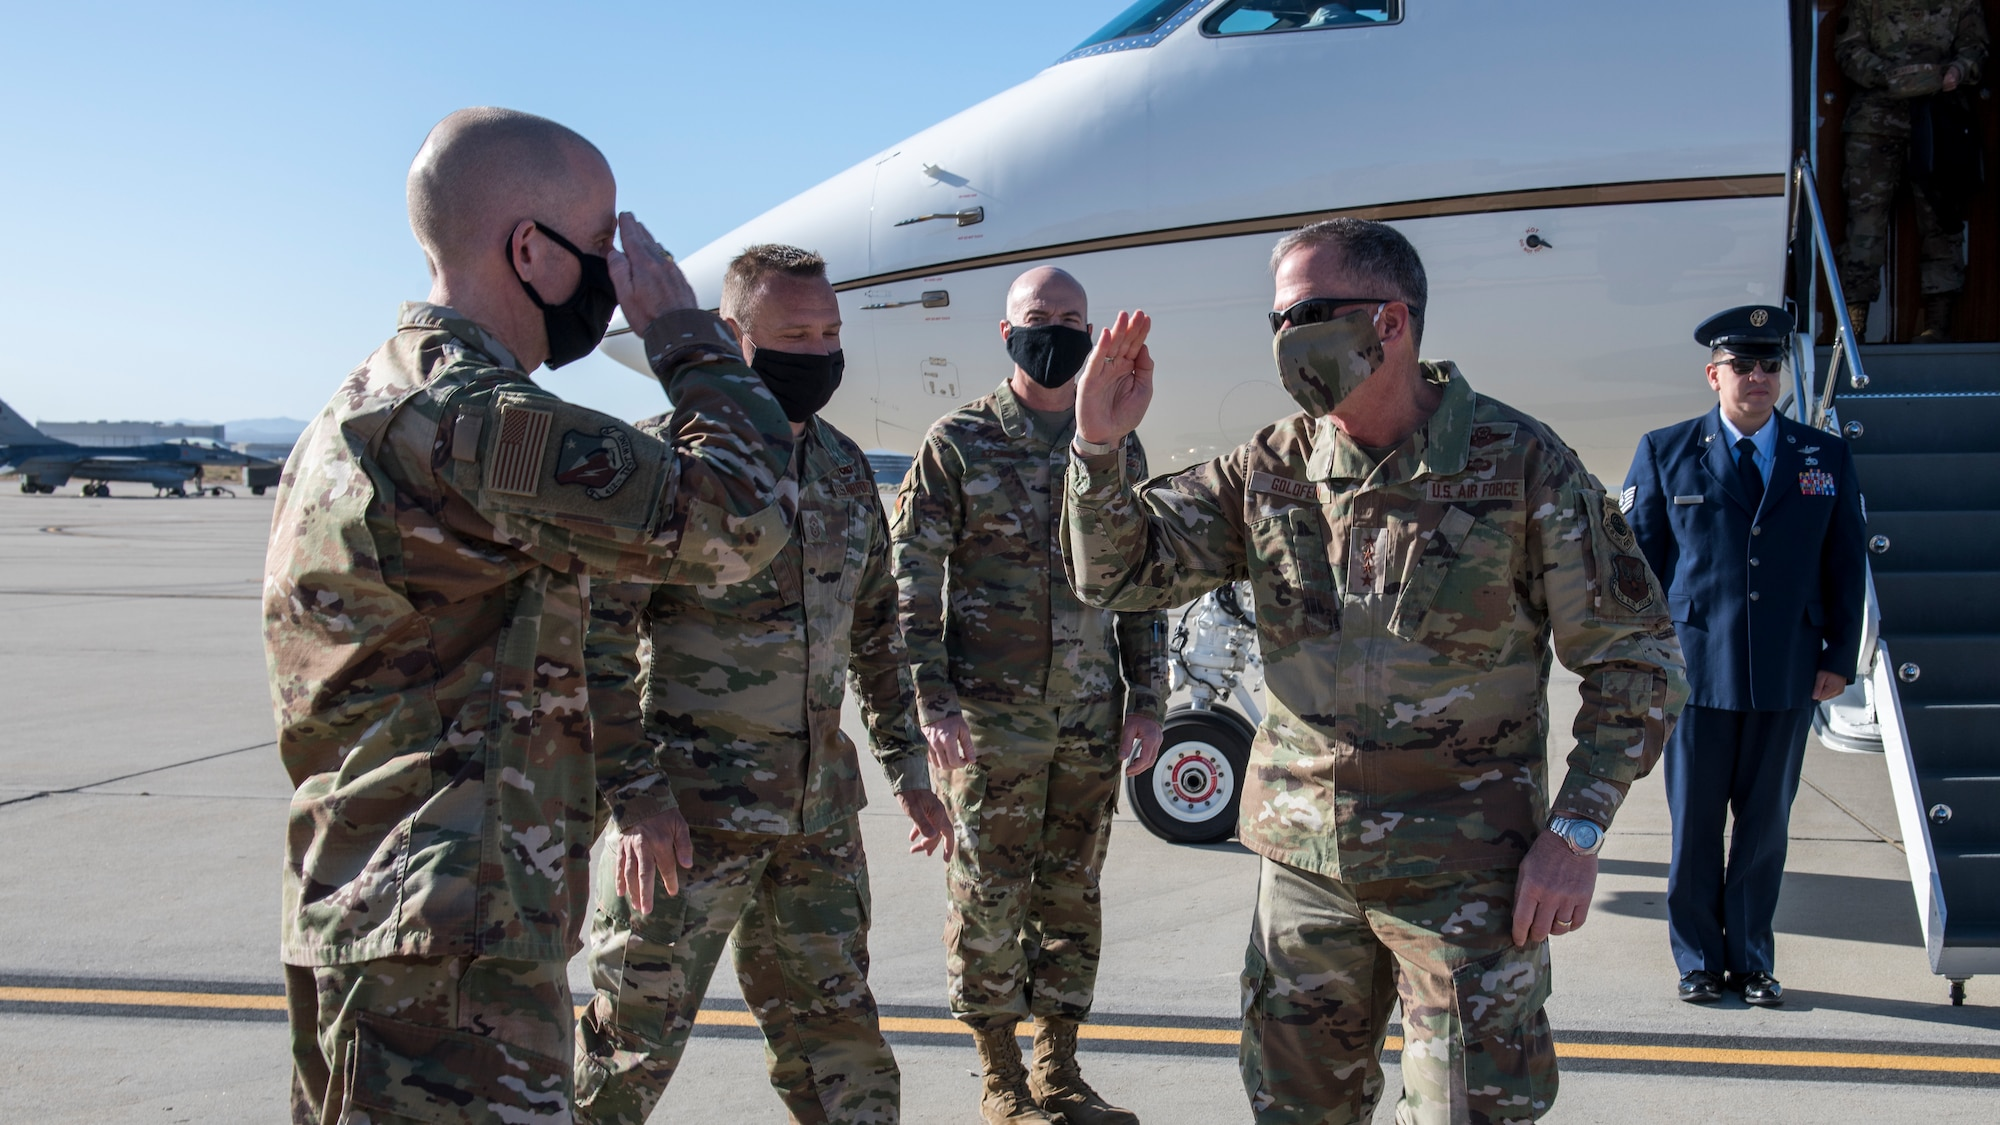 Brig. Gen. Matthew Higer, 412th Test Wing commander, salutes Air Force Chief of Staff Gen. David Goldfein at Edwards Air Force Base, California, June 17. (Air Force photo by Giancarlo Casem)